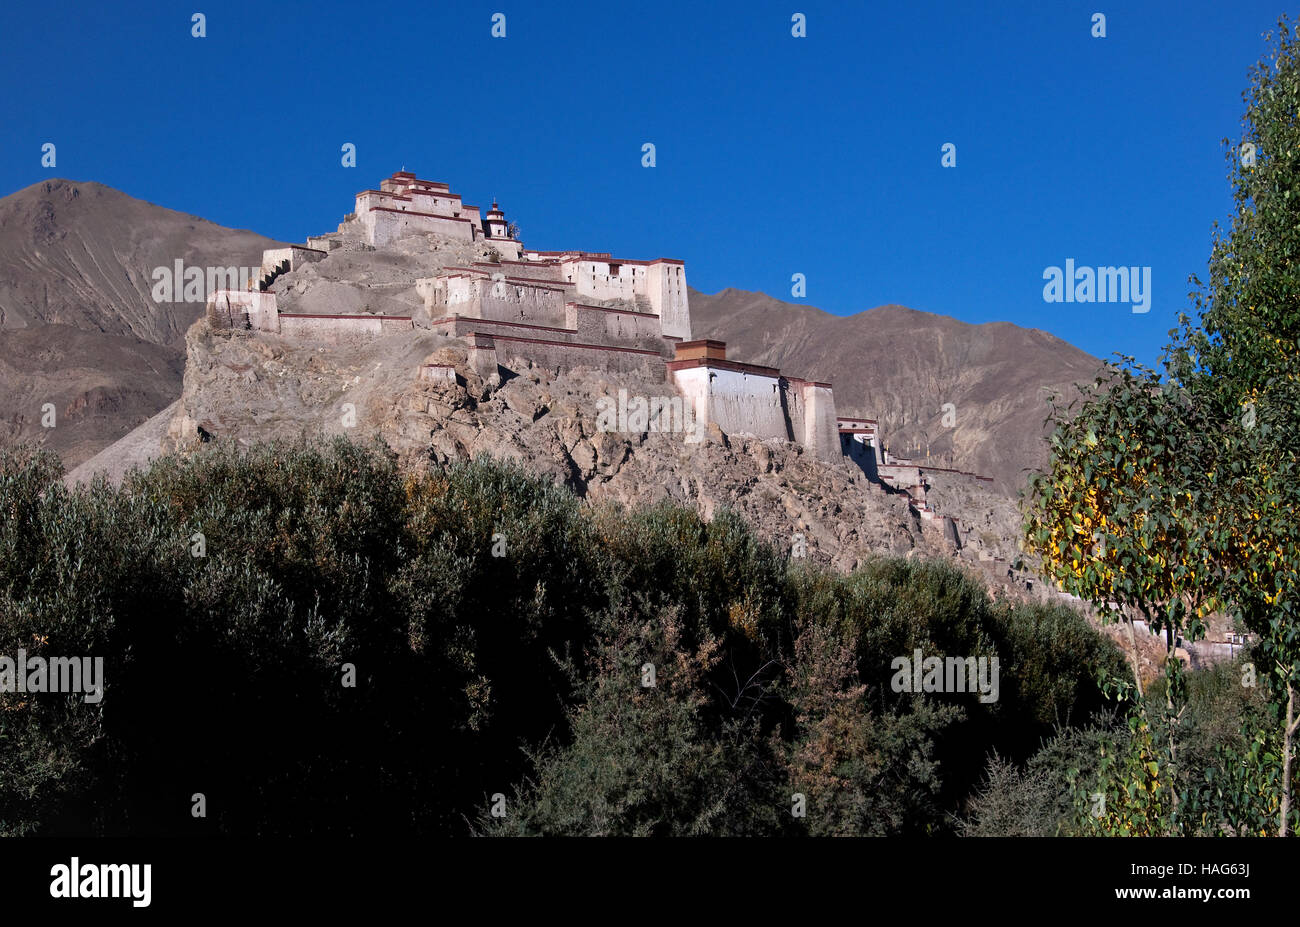 Gyantse Dzong or Gyantse Fortress is one of the best preserved dzongs in Tibet, perched high above the town of Gyantse. - Stock Image